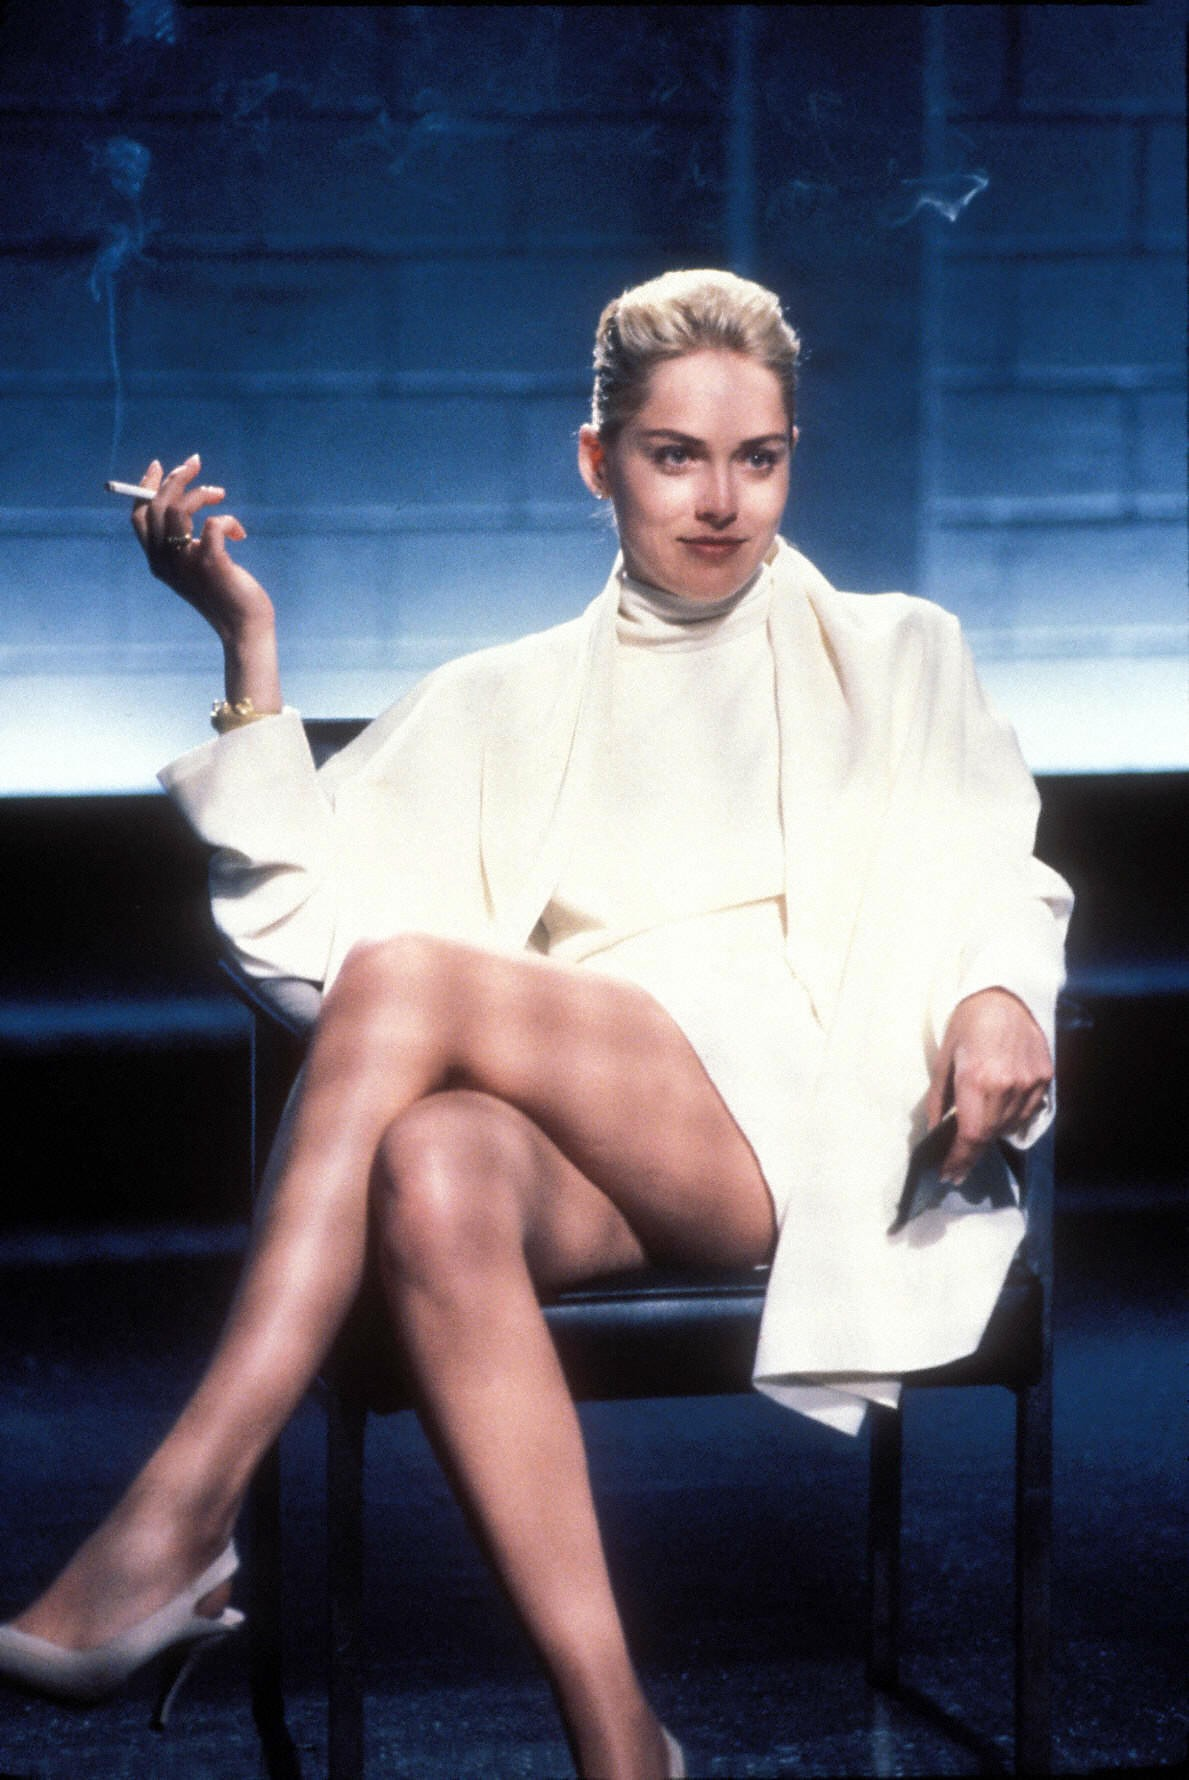 catherine_tramell_basic-instinct_10_powerful_women_from_movies_and_tv_series_fabulous-muses